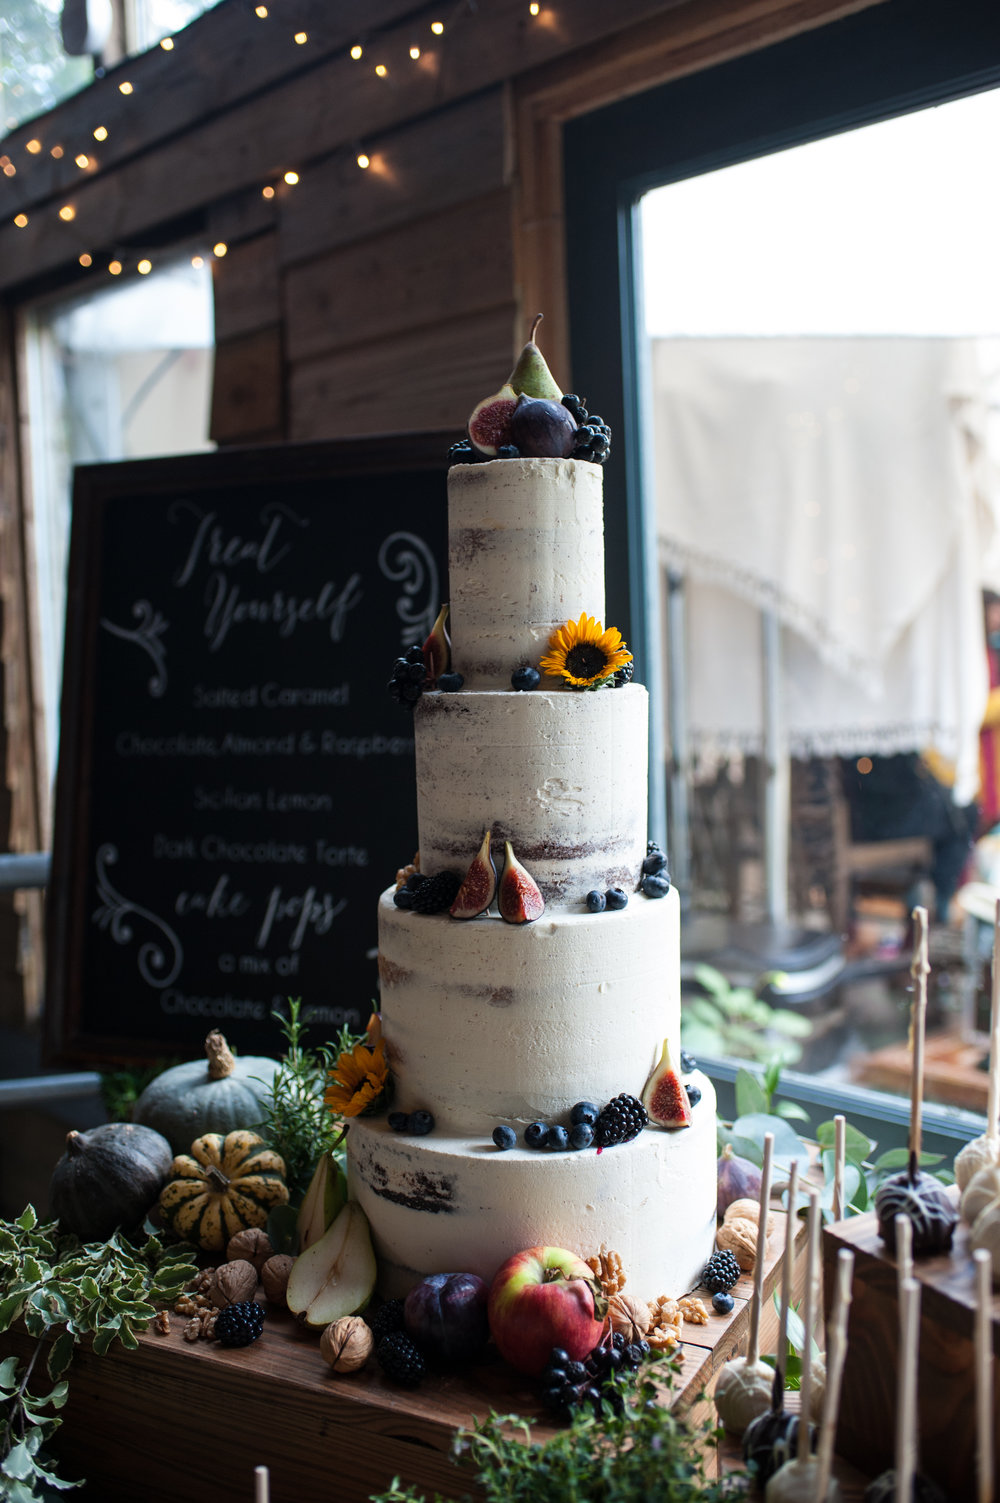 wedding cake goals! edible essence